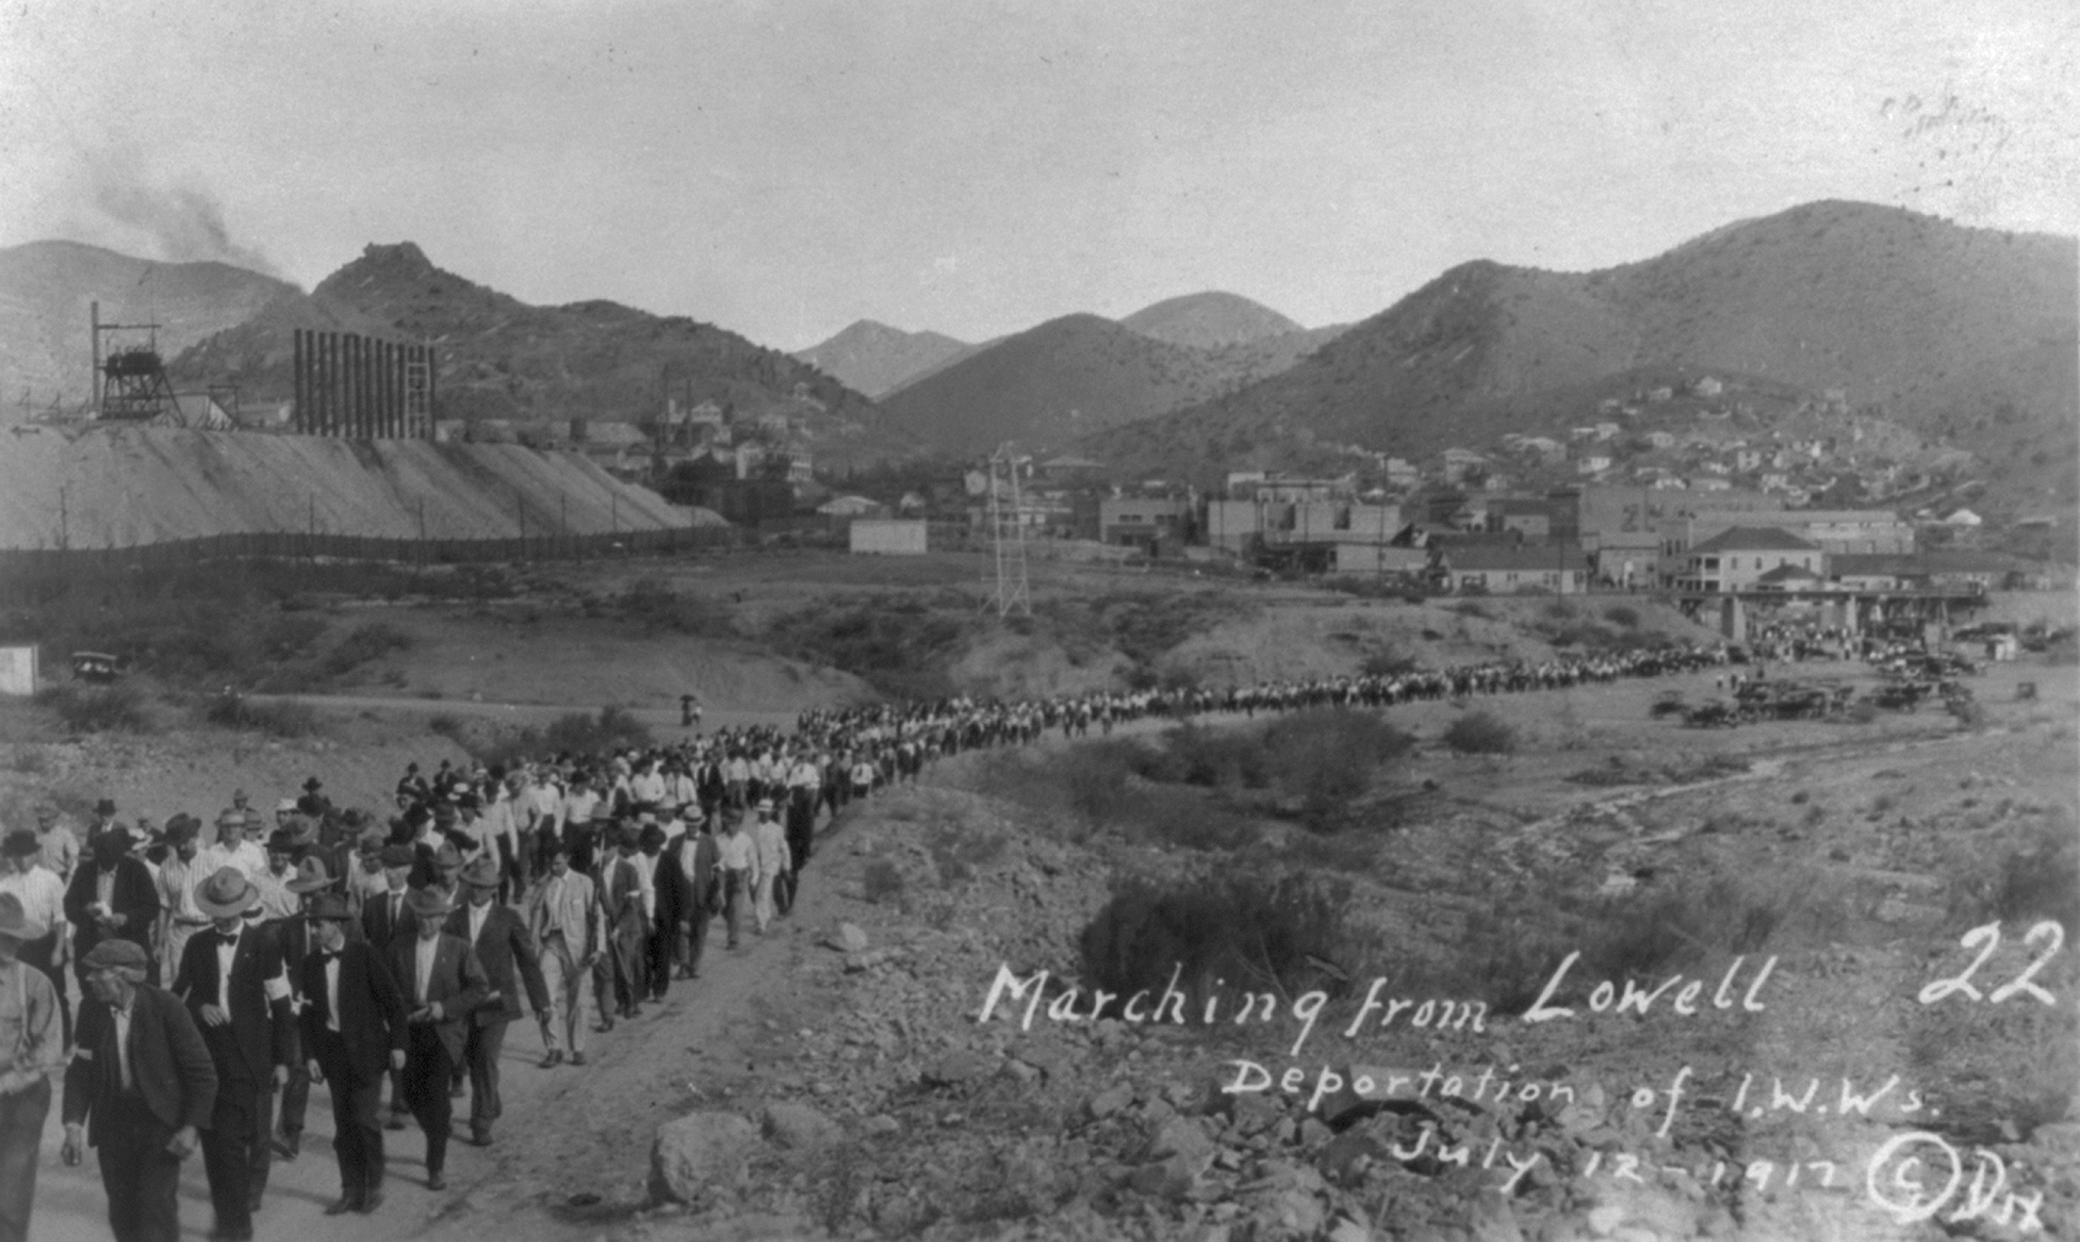 Two Ways of Looking at the Bisbee Deportation | Lapham's Quarterly